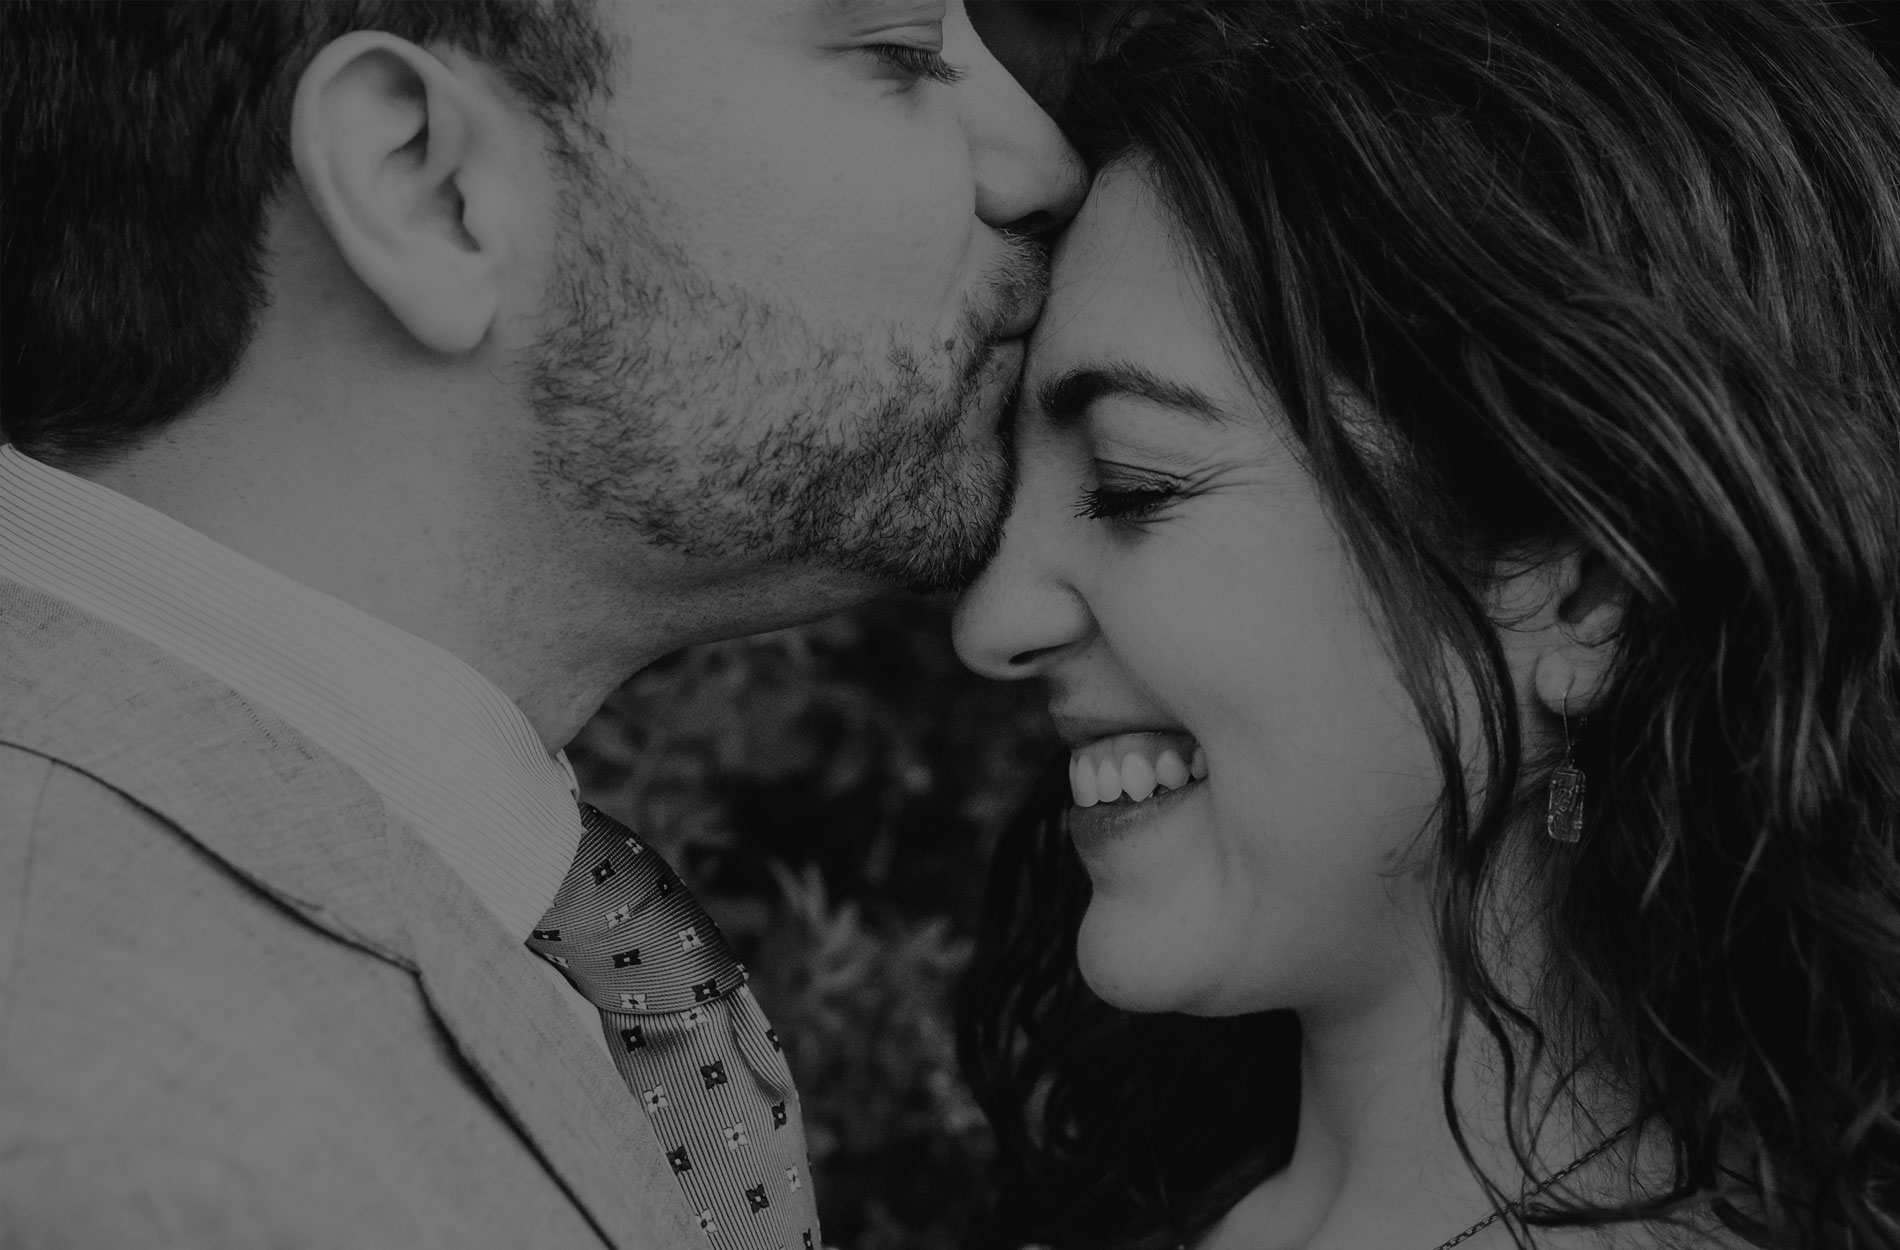 Couples photography, man kissing woman's forehead